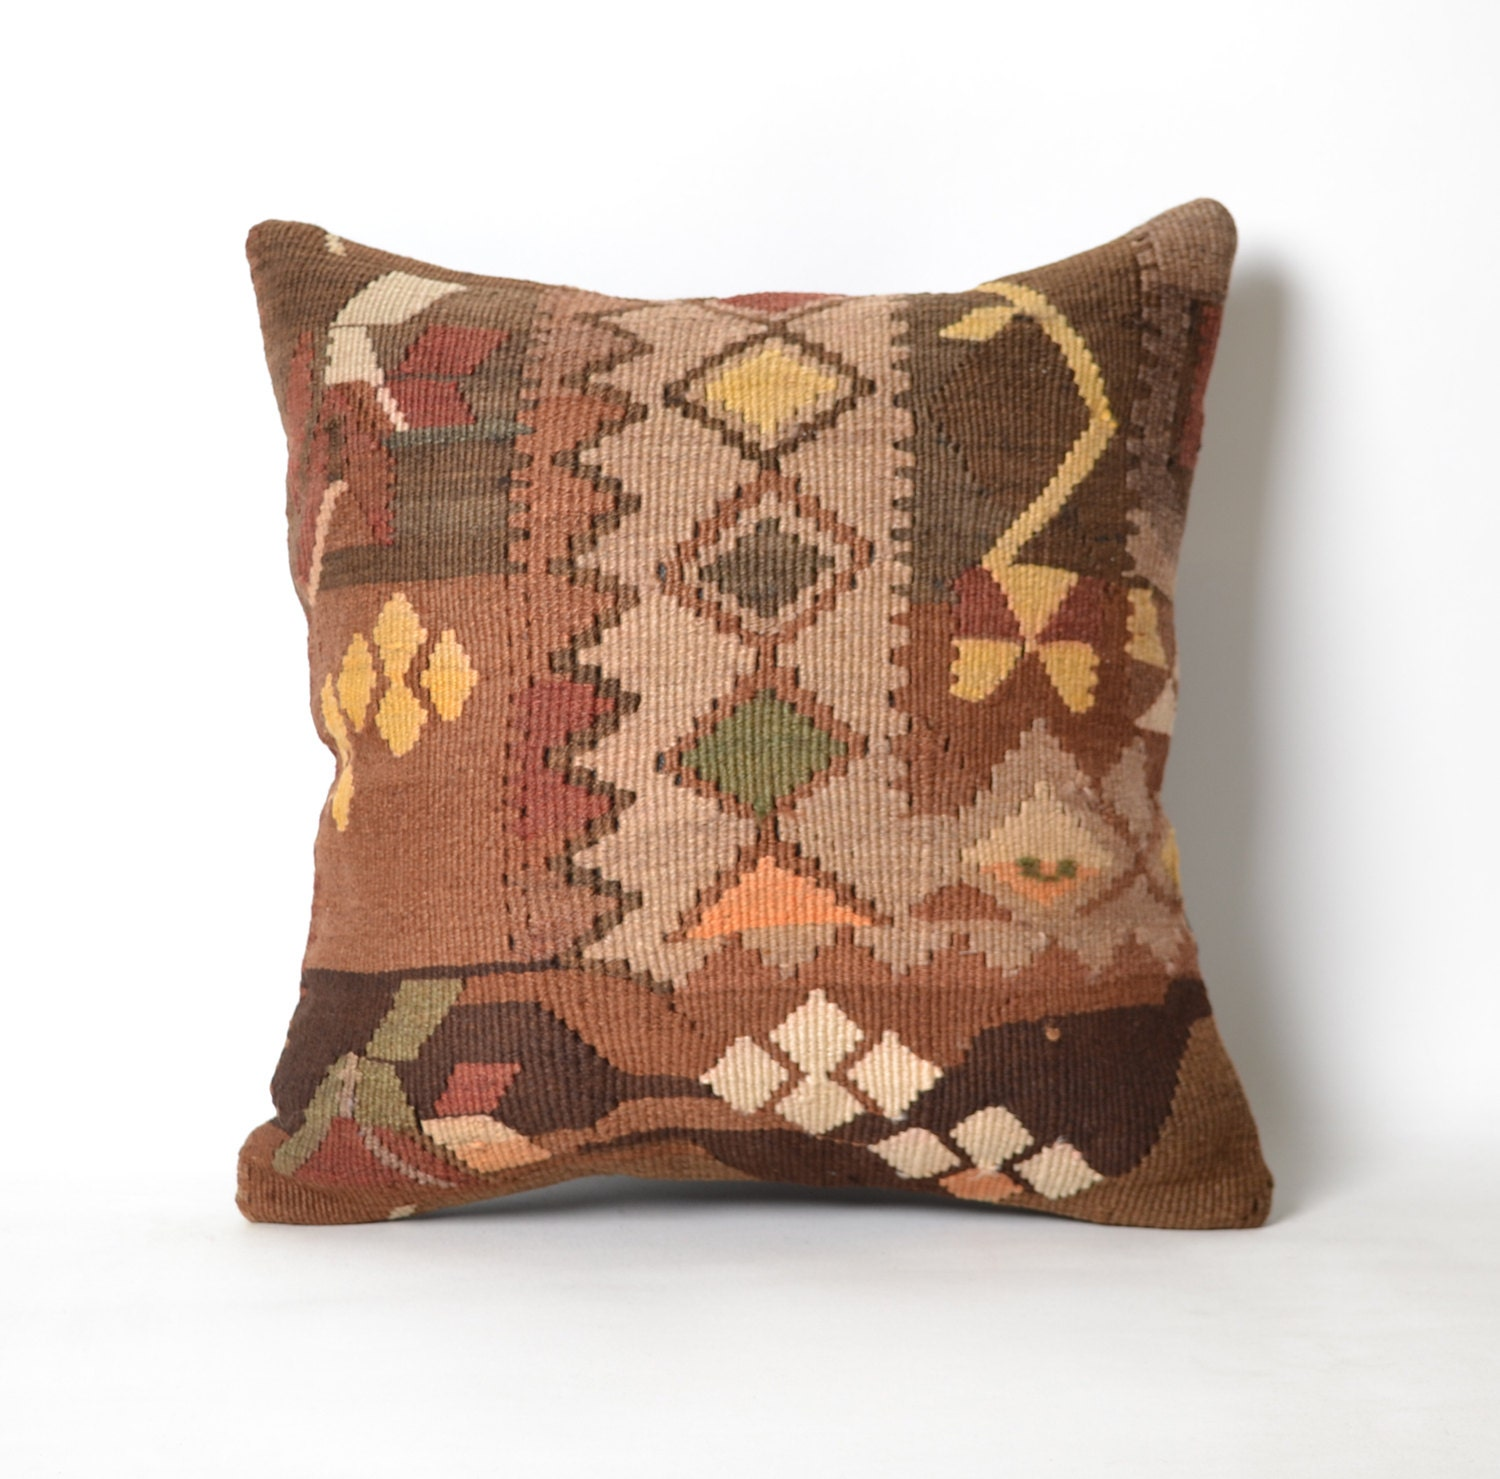 Eclectic Couch Pillows : eclectic pillow throw pillow decorative pillow kilim